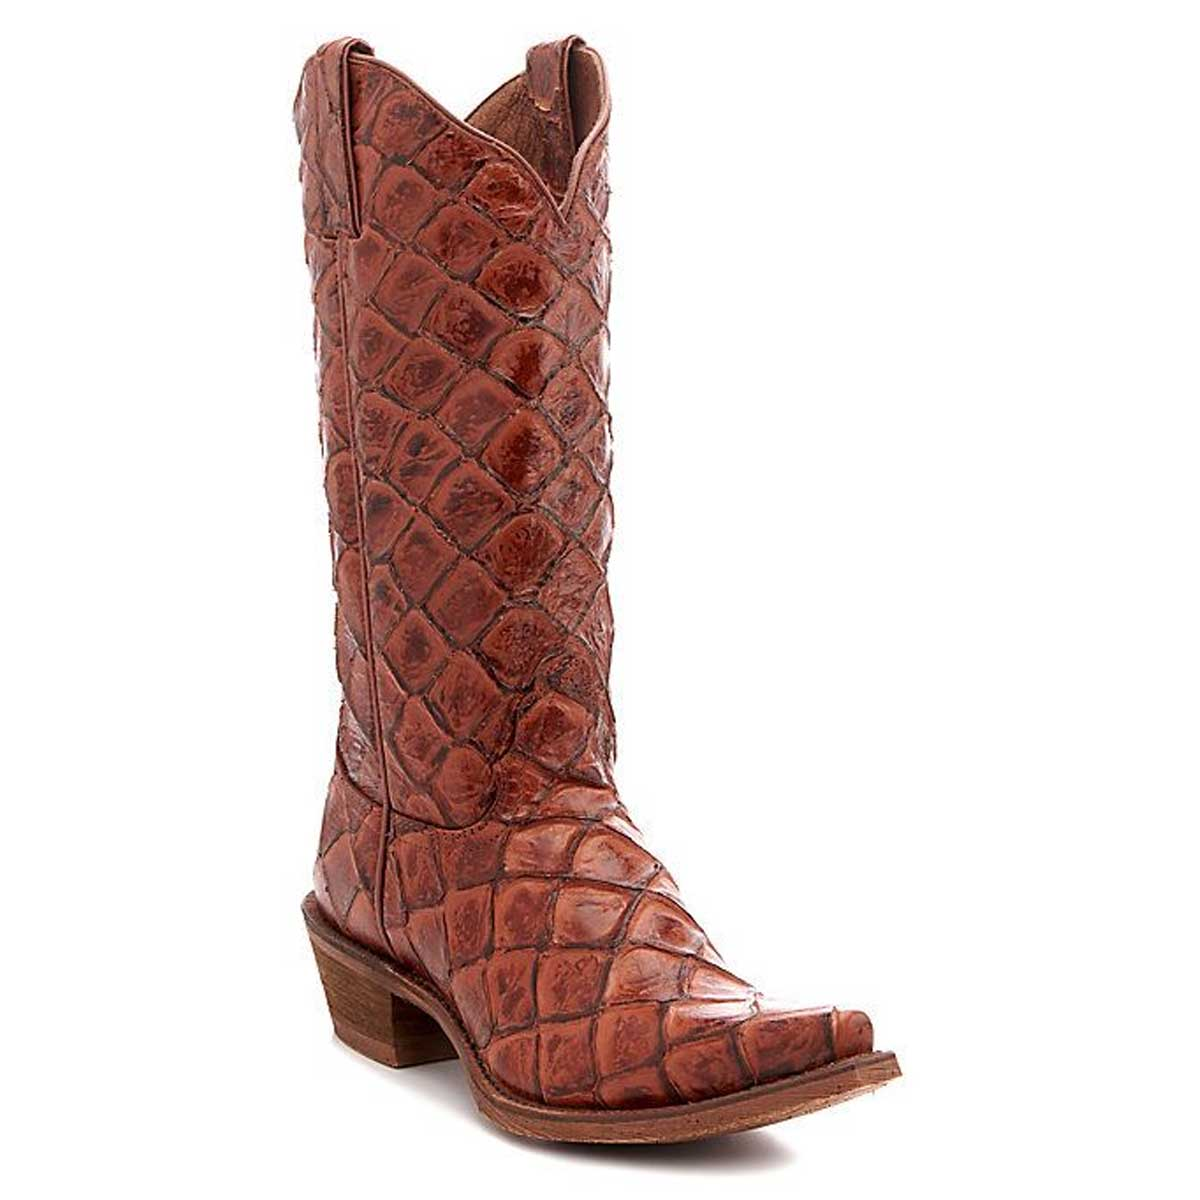 Tony Lama Bessie Women's Exotic Fish Scale Print Cowgirl Boots - Cognac